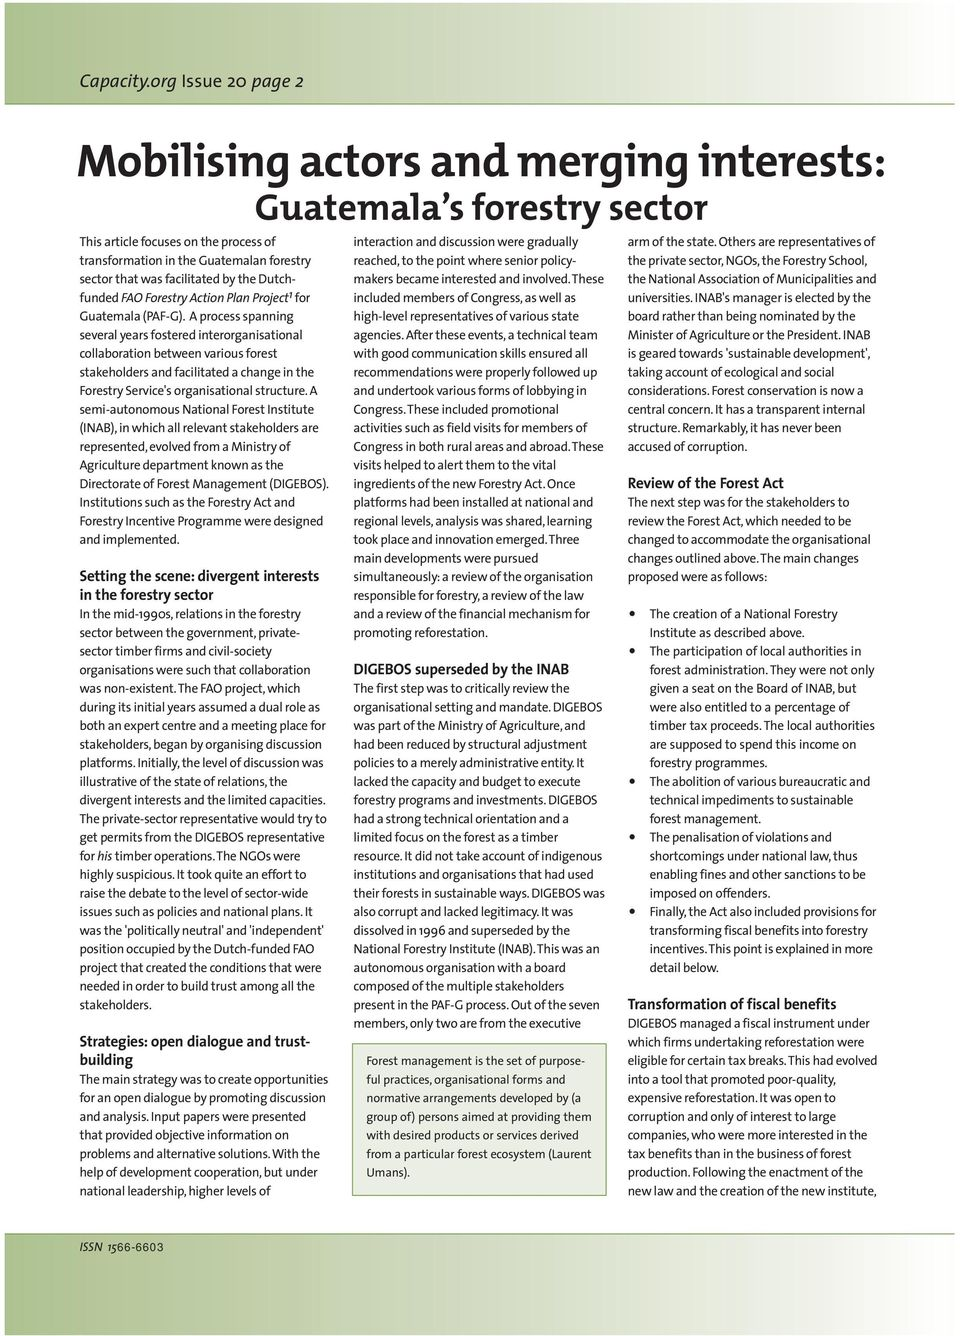 by the Dutchfunded FAO Forestry Action Plan Project 1 for Guatemala (PAF-G).